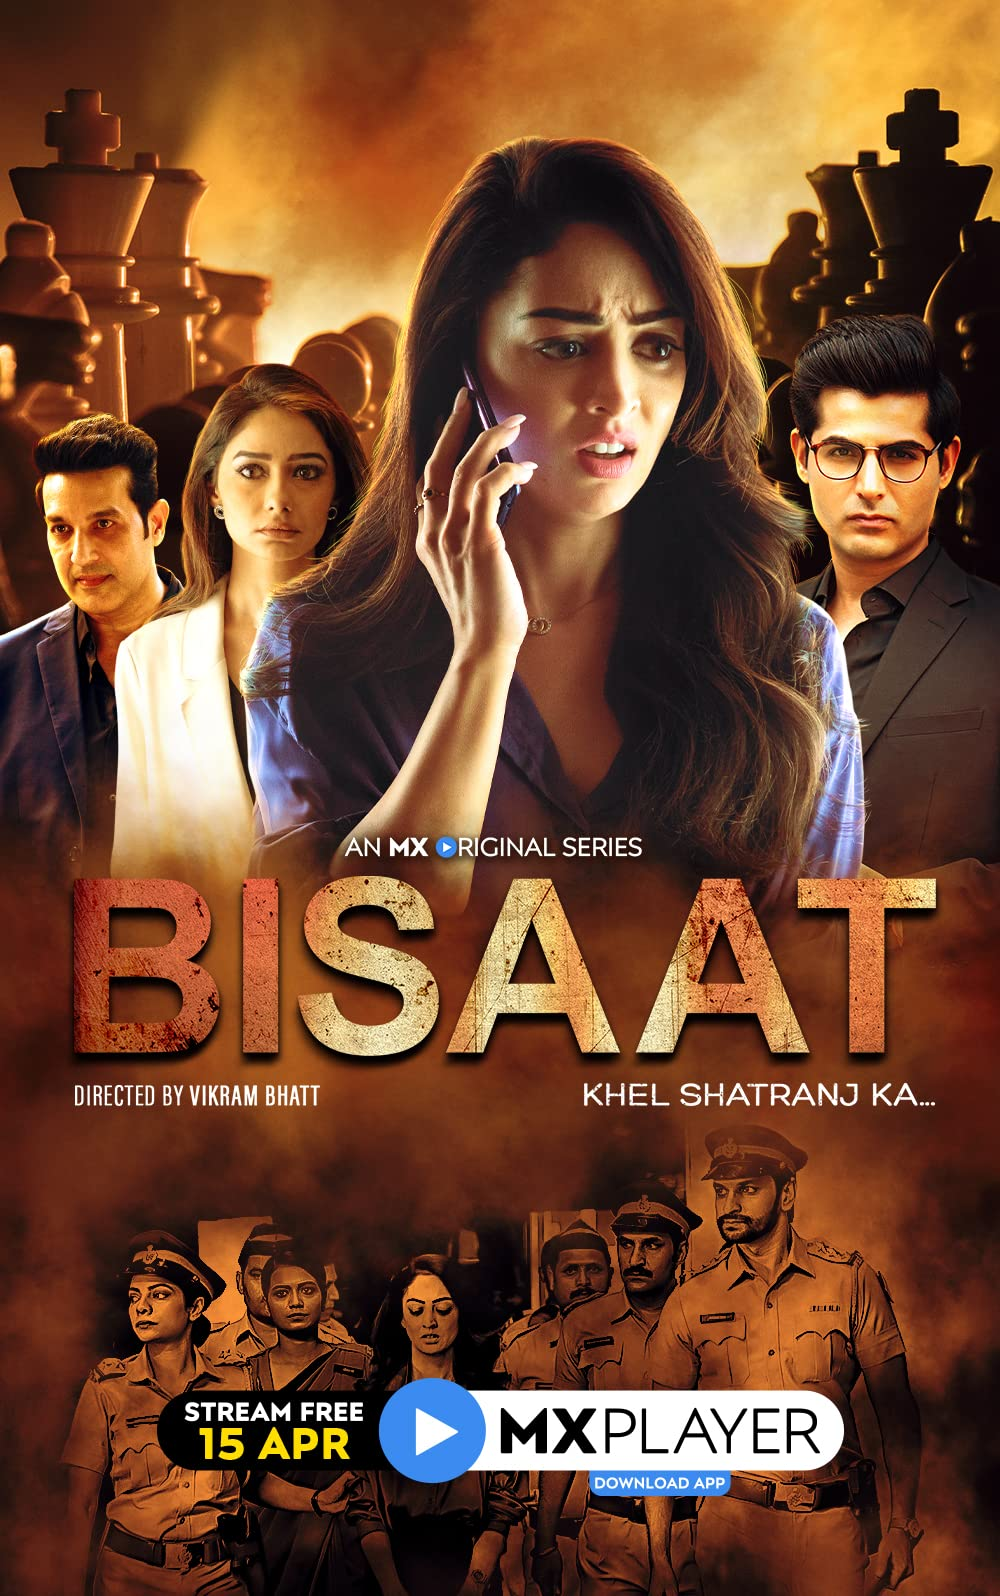 Bisaat: Khel Shatranj Ka 2021 S01 Hindi MX Original Complete Web Series 480p HDRip 700MB x264 AAC